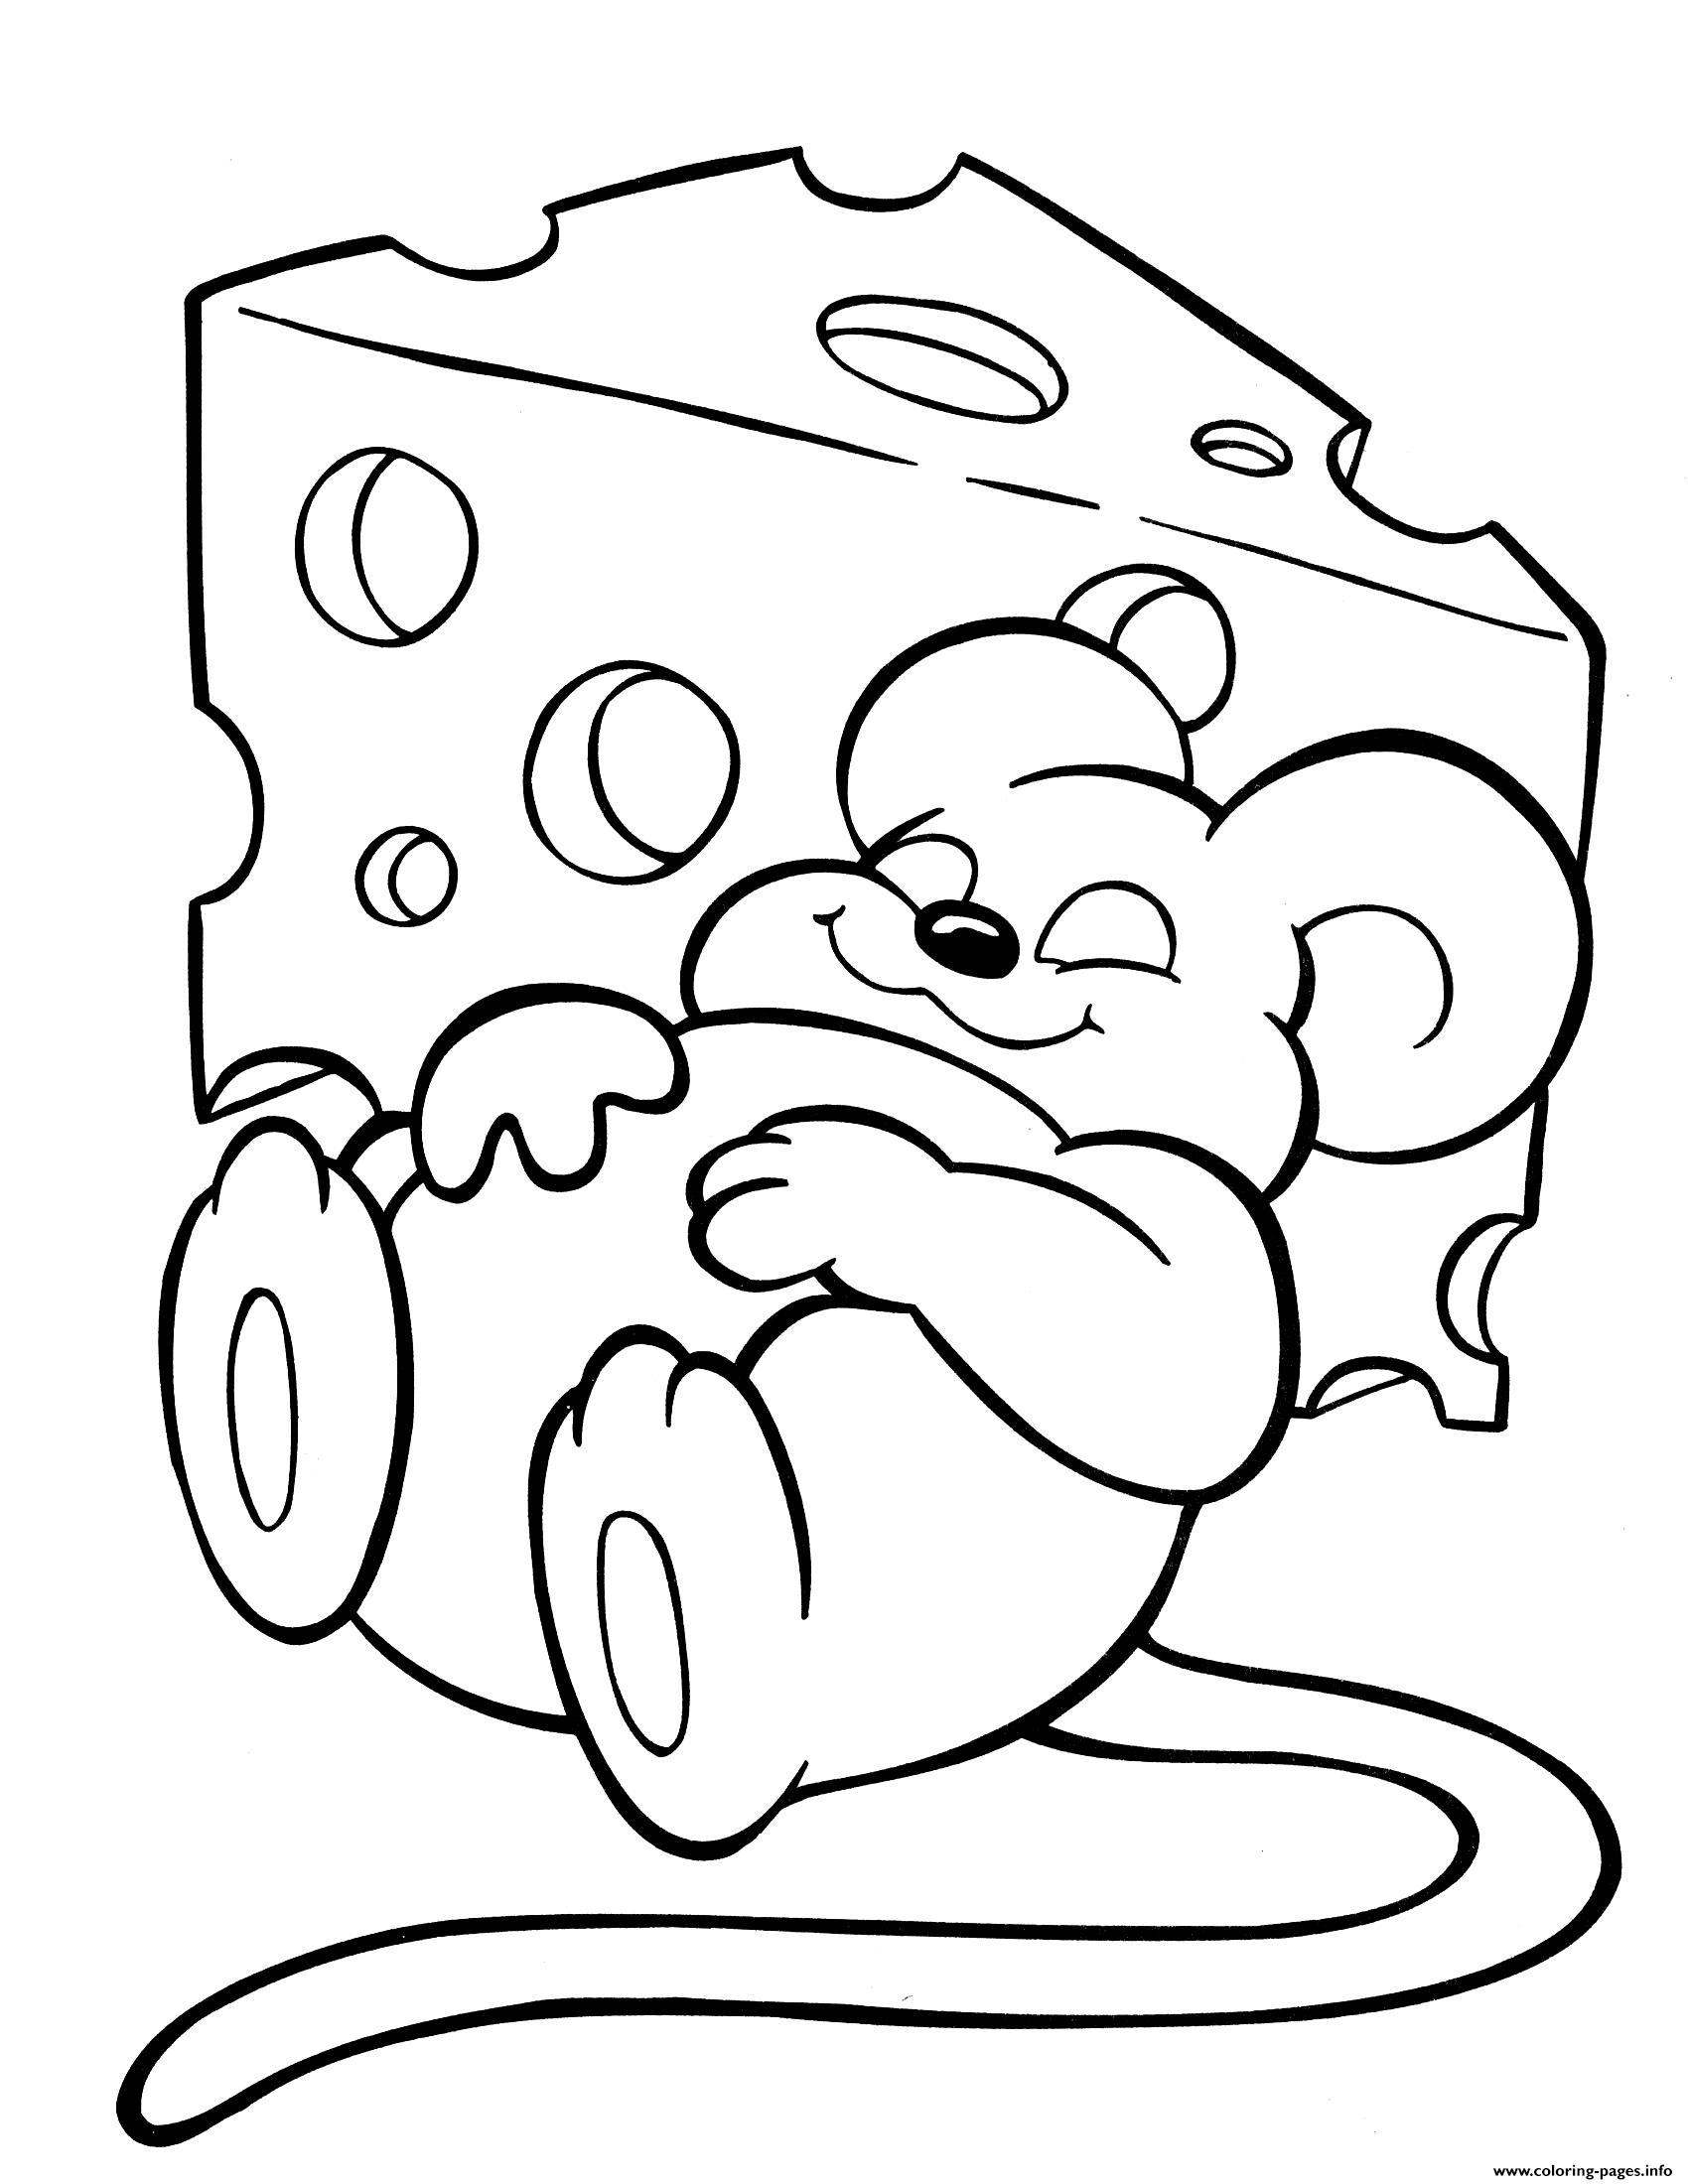 Crayola Mouse Love Cheese Coloring Pages Printable